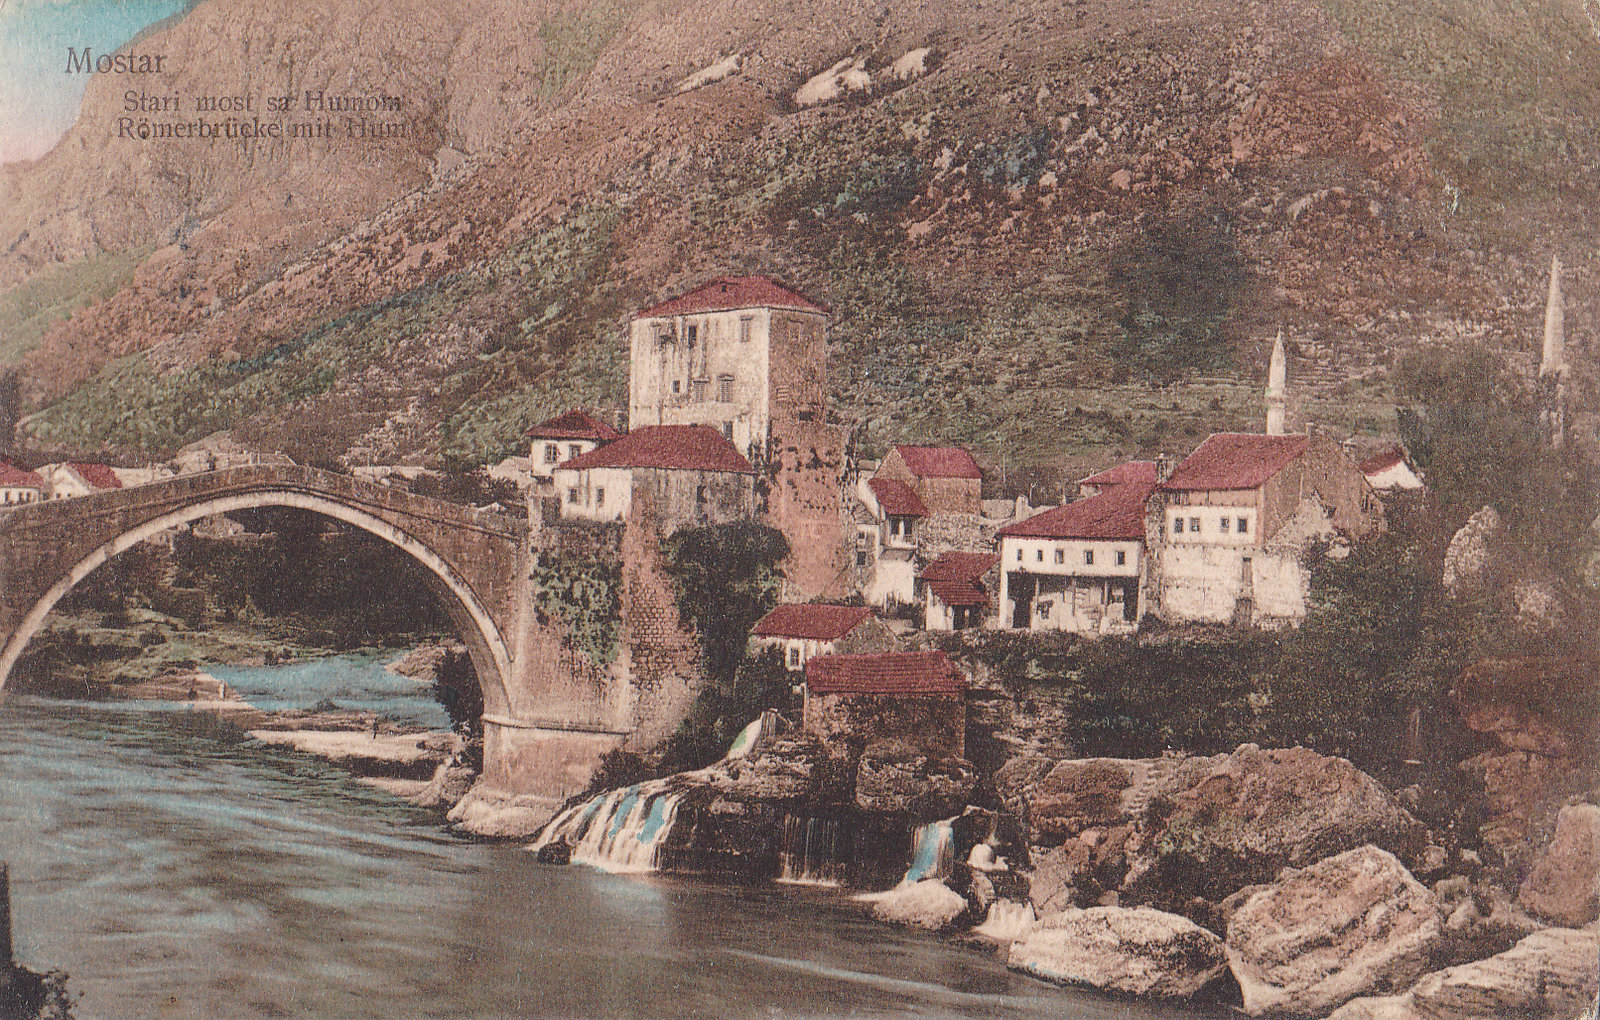 The Old Bridge - Mostar, Naklada prve muslimanske nakladne knjižare u Mostaru / Edition of the First Muslim Publishing Bookstore in Mostar, National and University Library of Bosnia and Herzegovina, CC BY-NC-ND